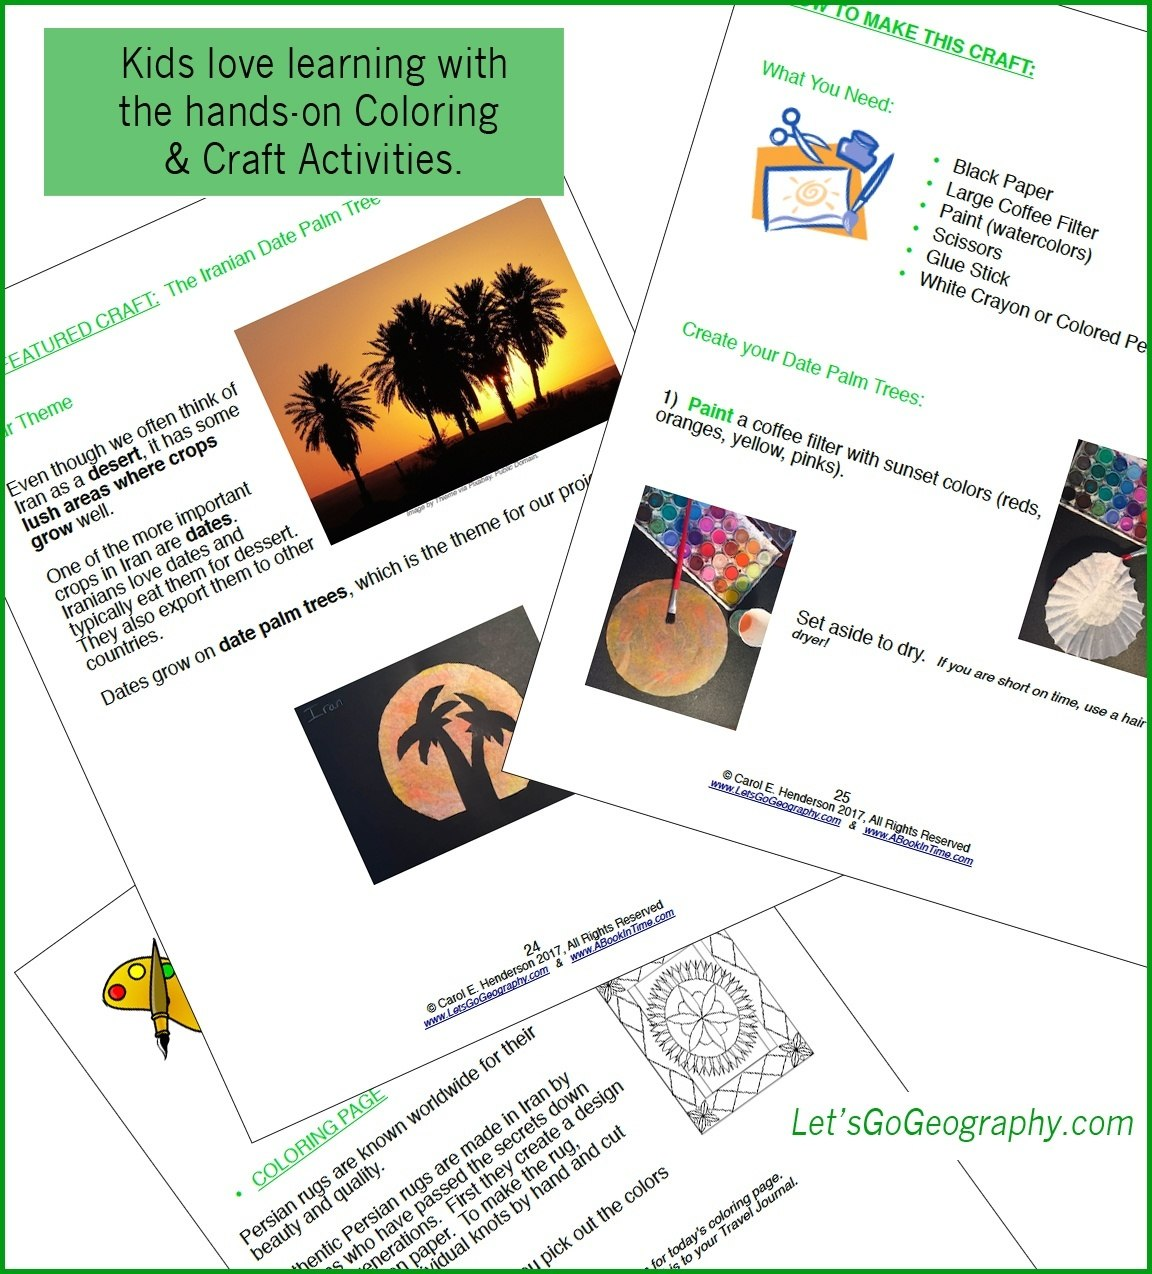 Let's Go Geography Creative Pages